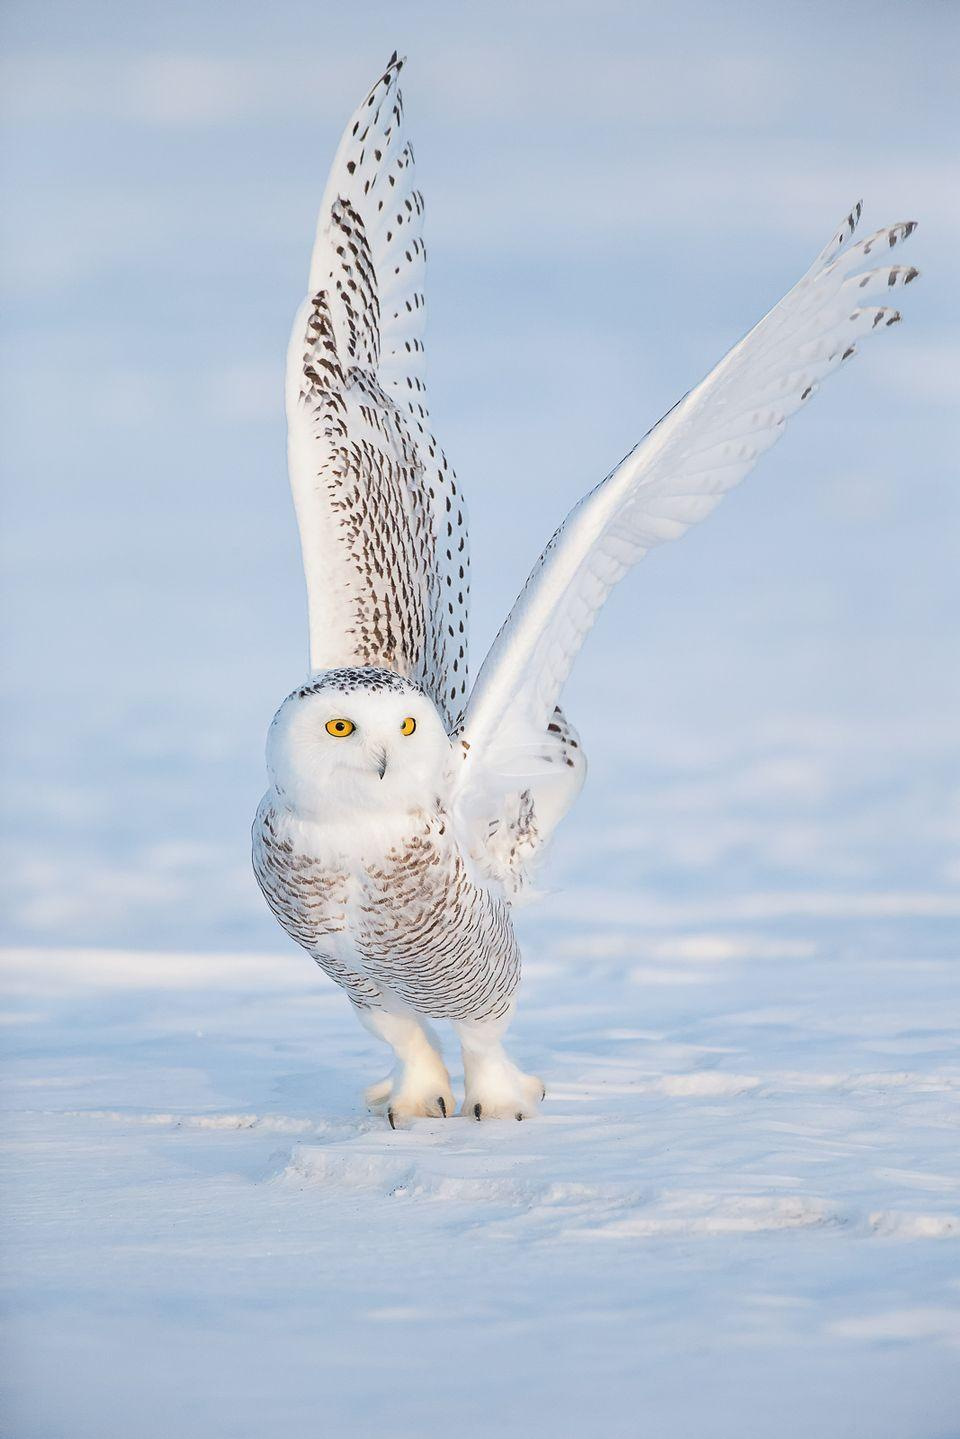 Animal Snowy Owl wallpapers (Desktop, Phone, Tablet) - Awesome ...